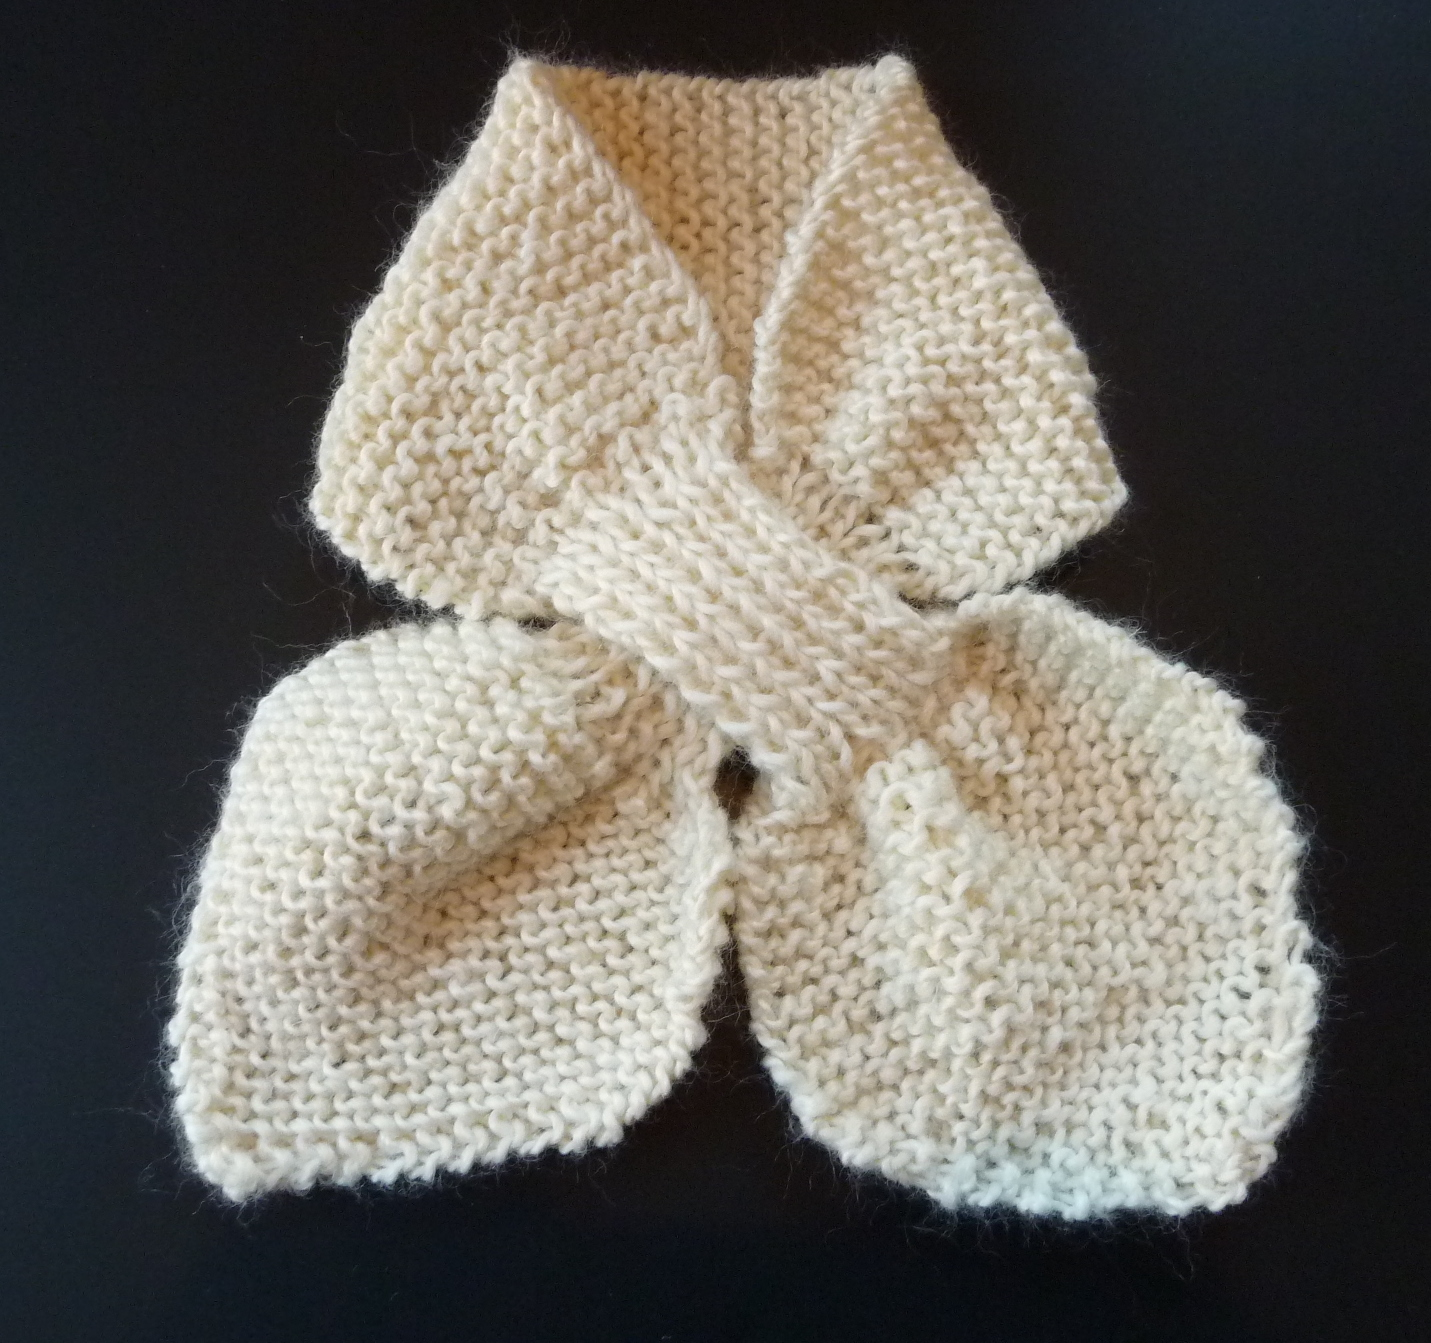 Knitting Pattern Bow Knot Scarf : Sus dBella Studio: Tuck-in or Bow-Knot Scarf